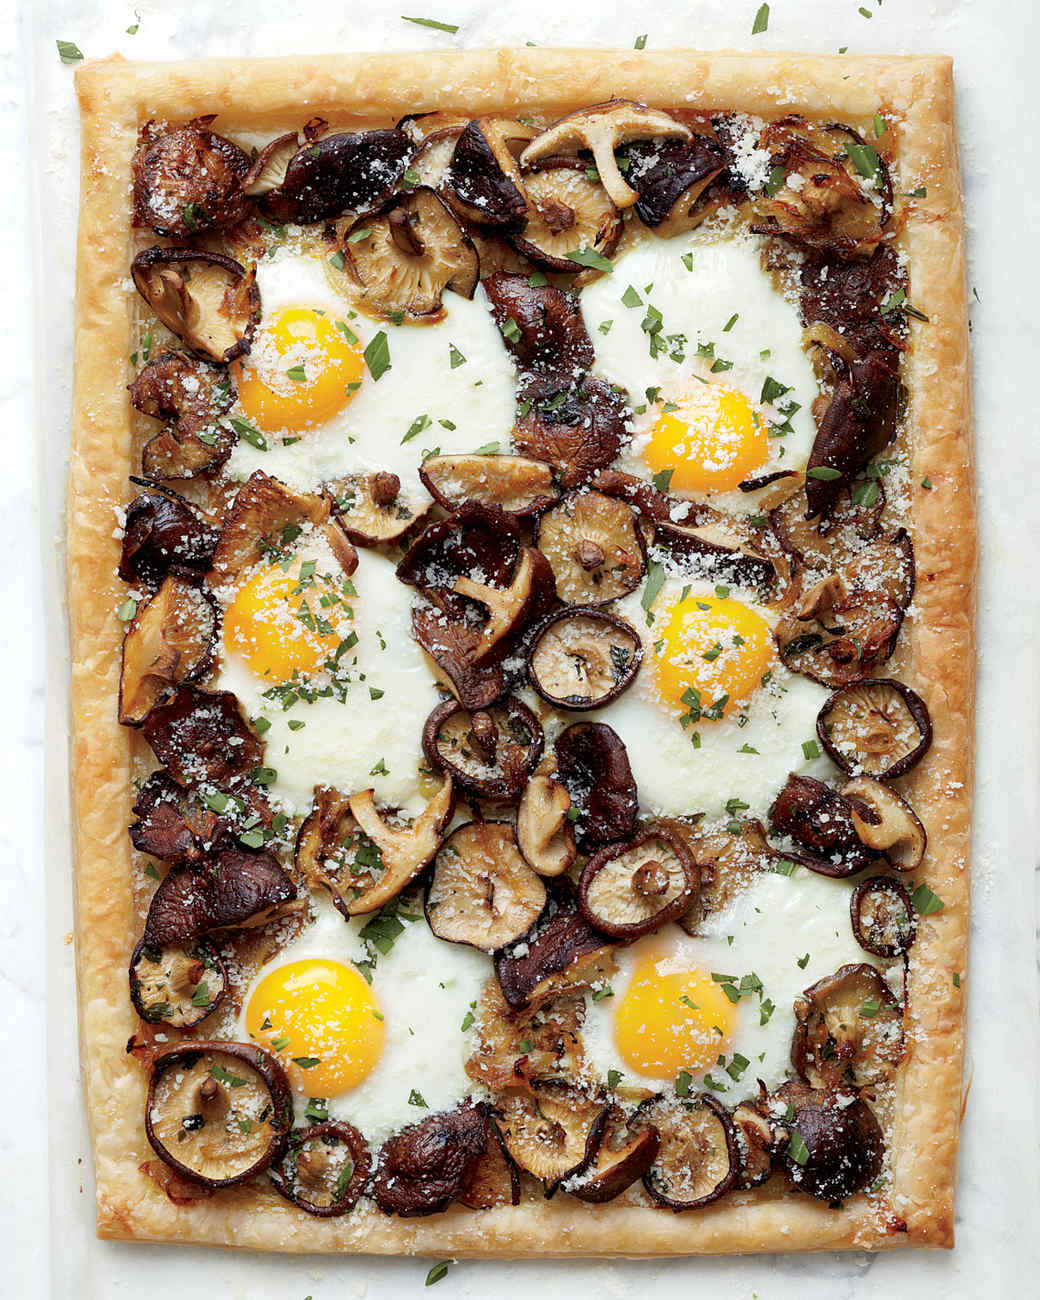 shiitake-egg-tart-finished-med107616.jpg